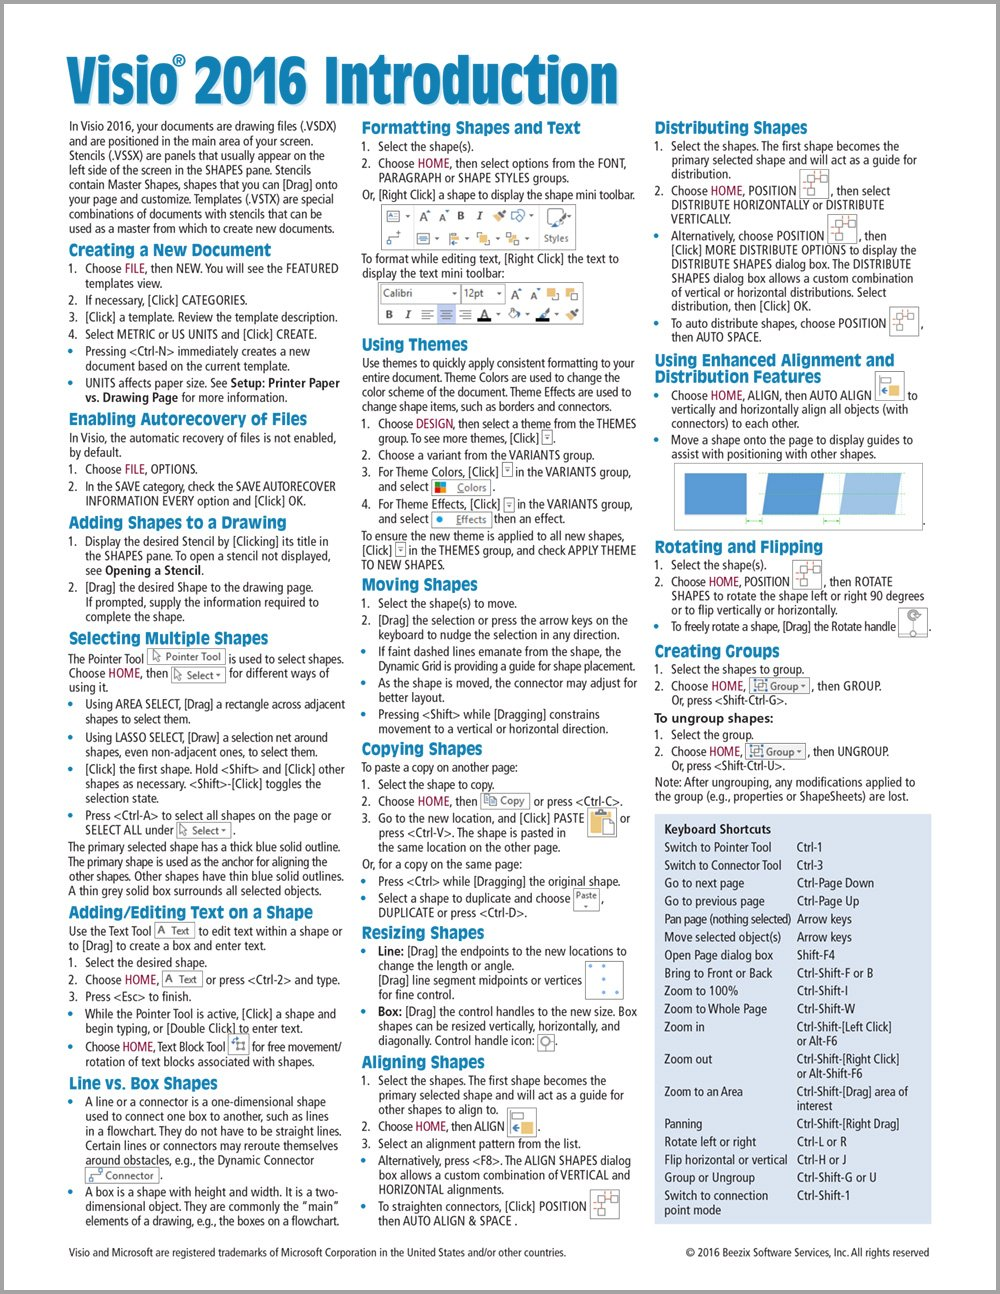 Read Online Microsoft Visio 2016 Introduction Quick Reference Guide - Windows Version (Cheat Sheet of Instructions, Tips & Shortcuts - Laminated Card) pdf